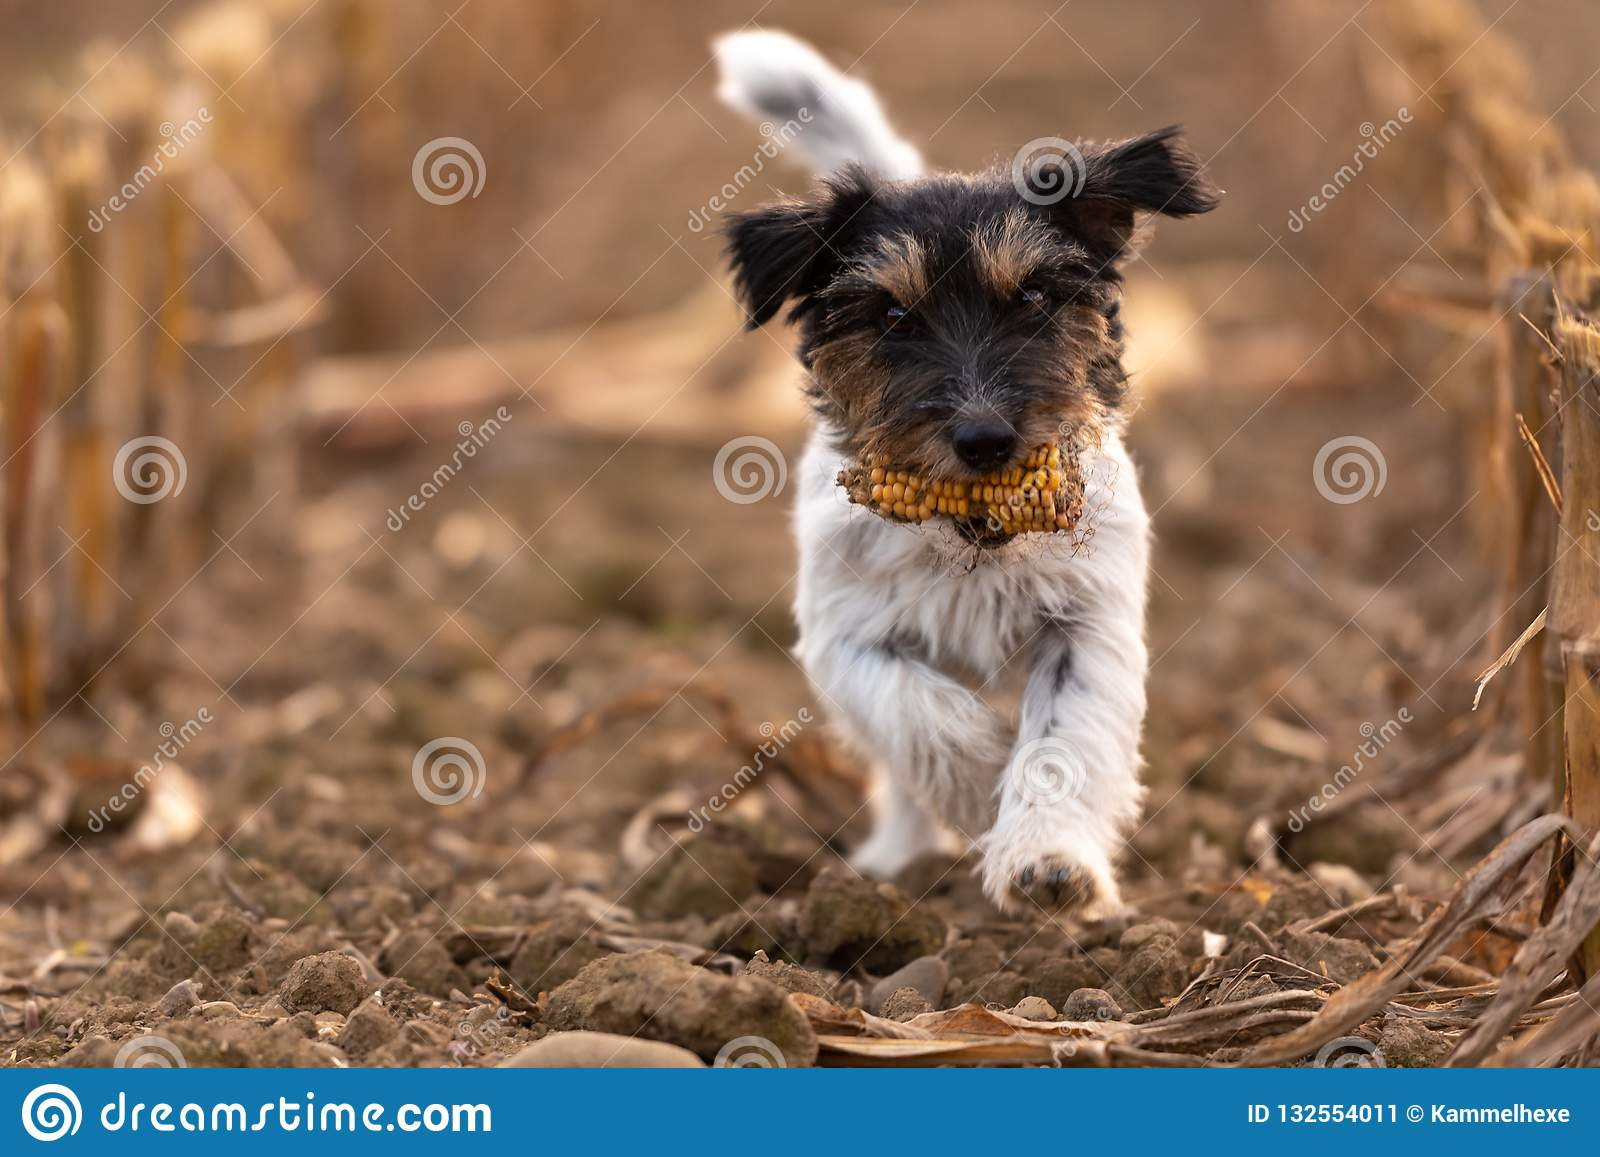 Little sweet shaggy Jack Russell Terrier is carrying a corncob and is running over a field